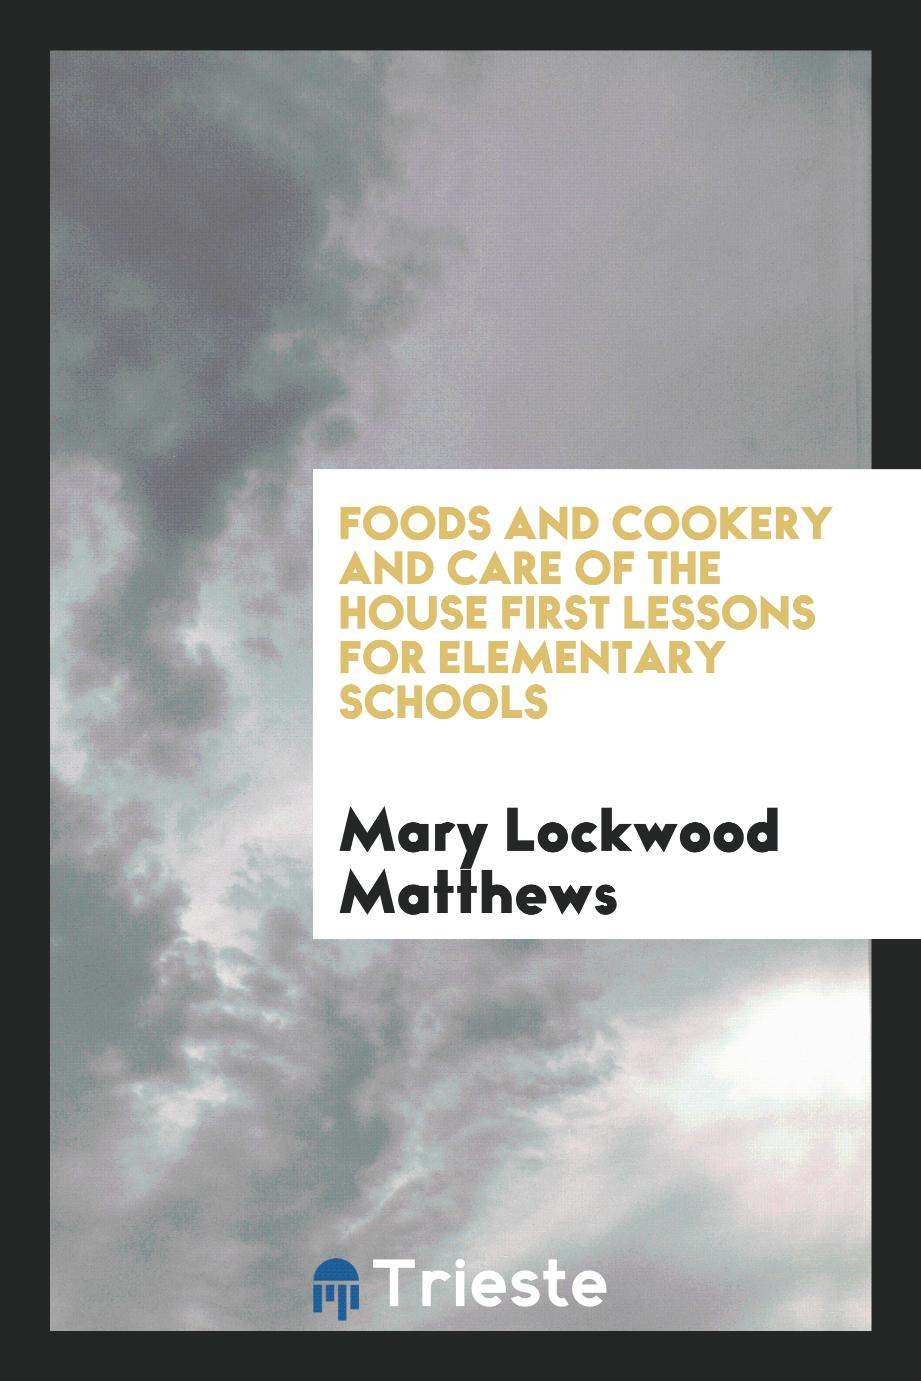 Foods and cookery and care of the house First lessons for elementary schools